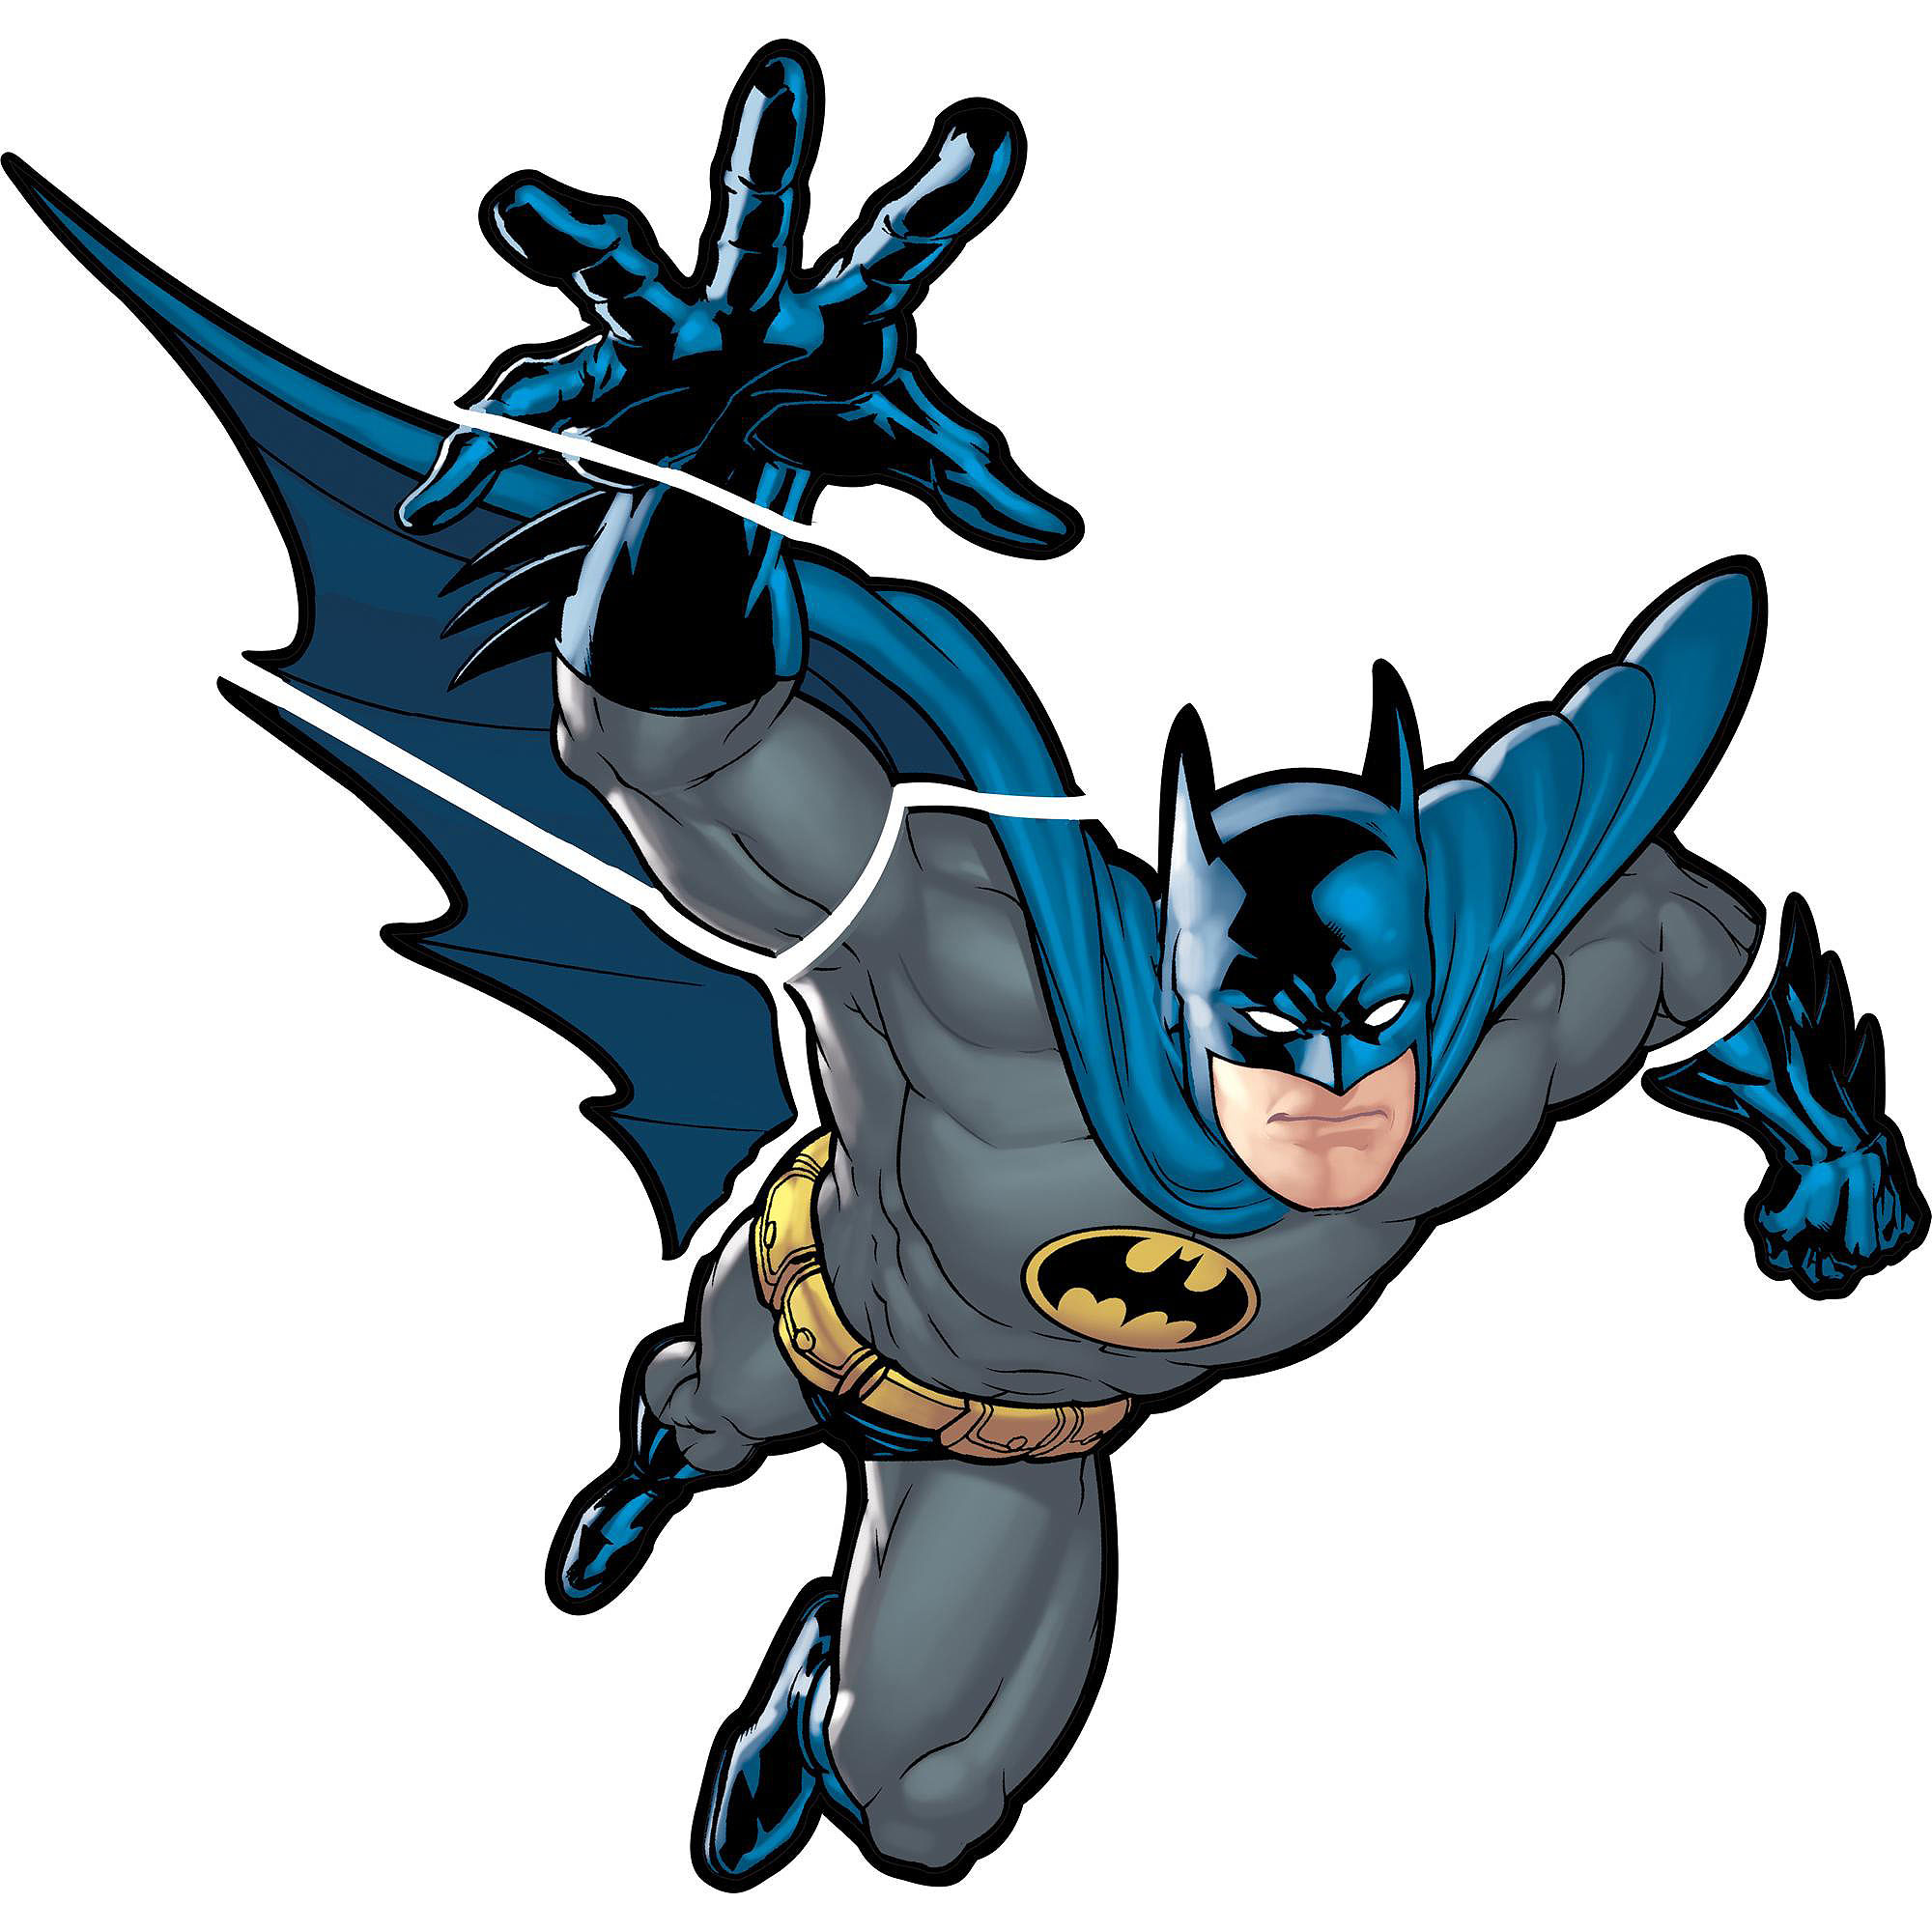 RoomMates Batman Gotham Guardian Peel and Stick Giant Wall Decal